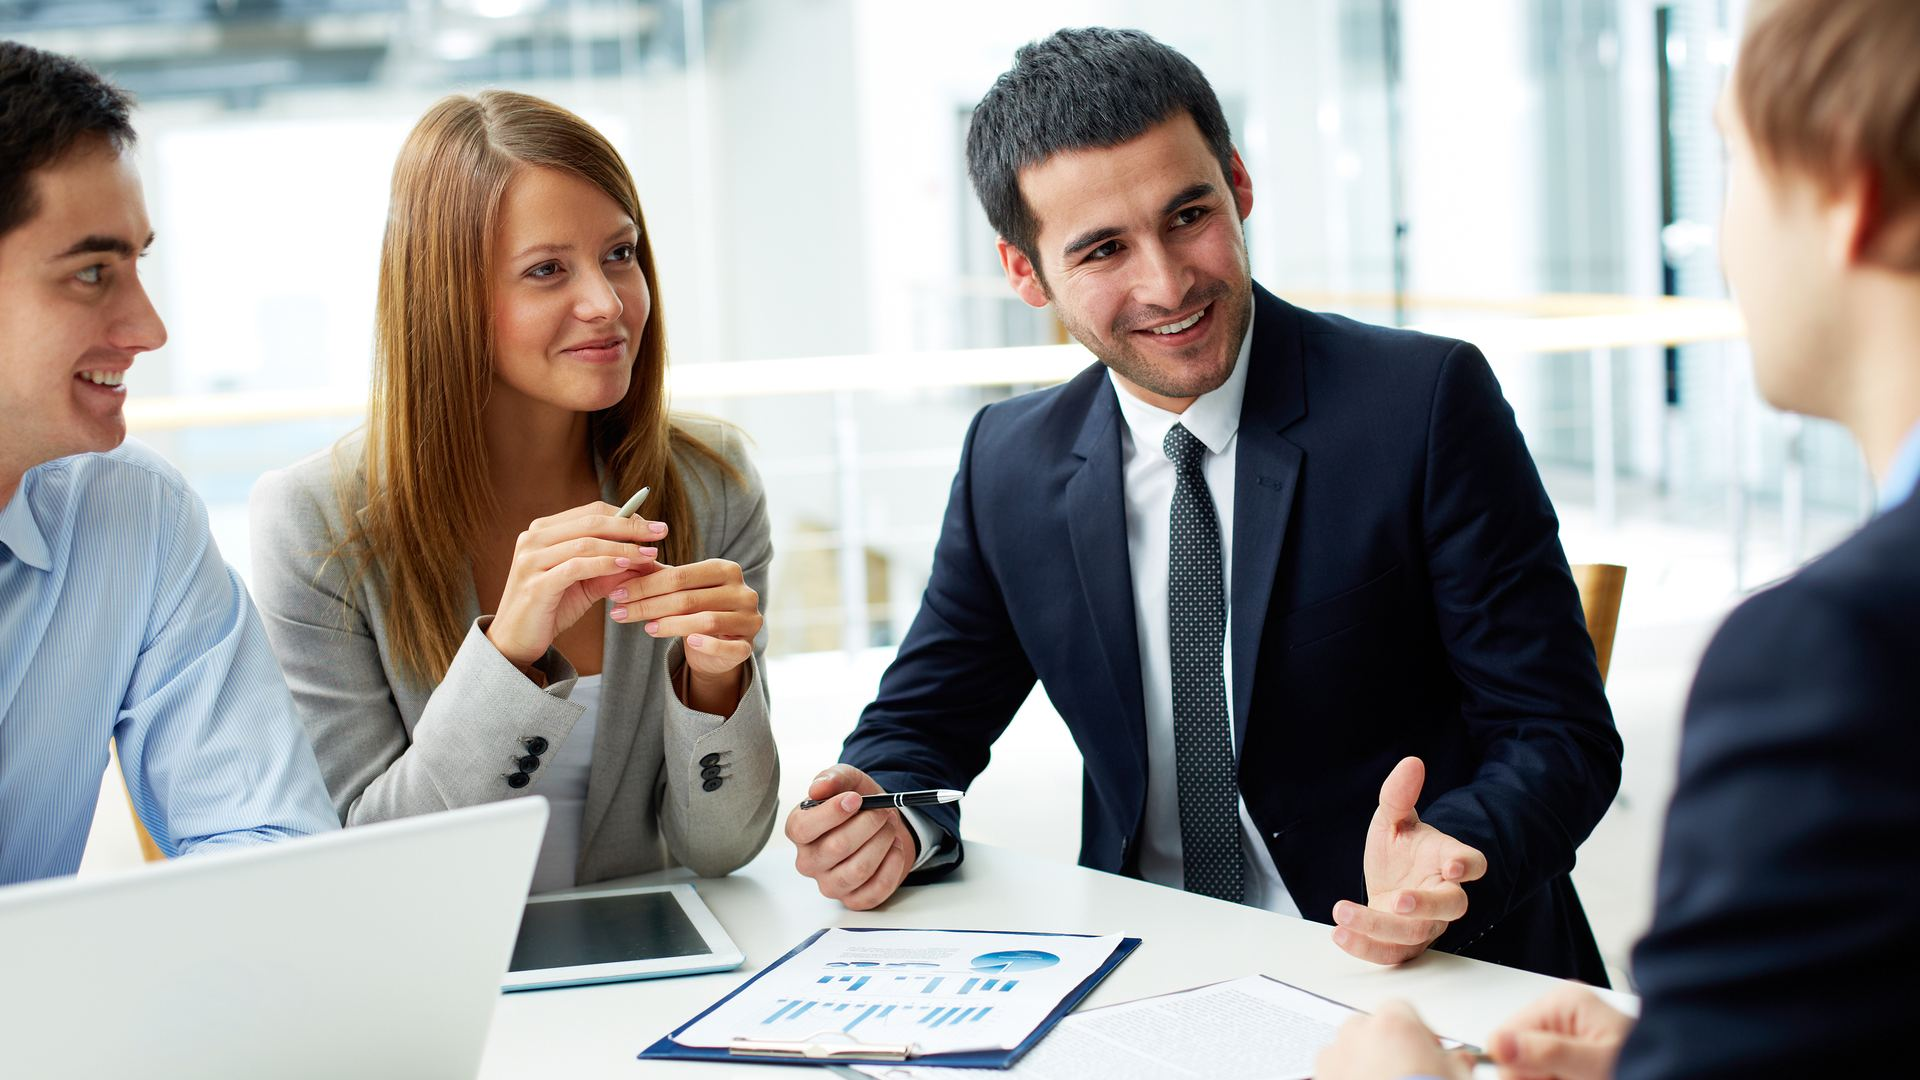 How to Lead a Successful Sales Meeting